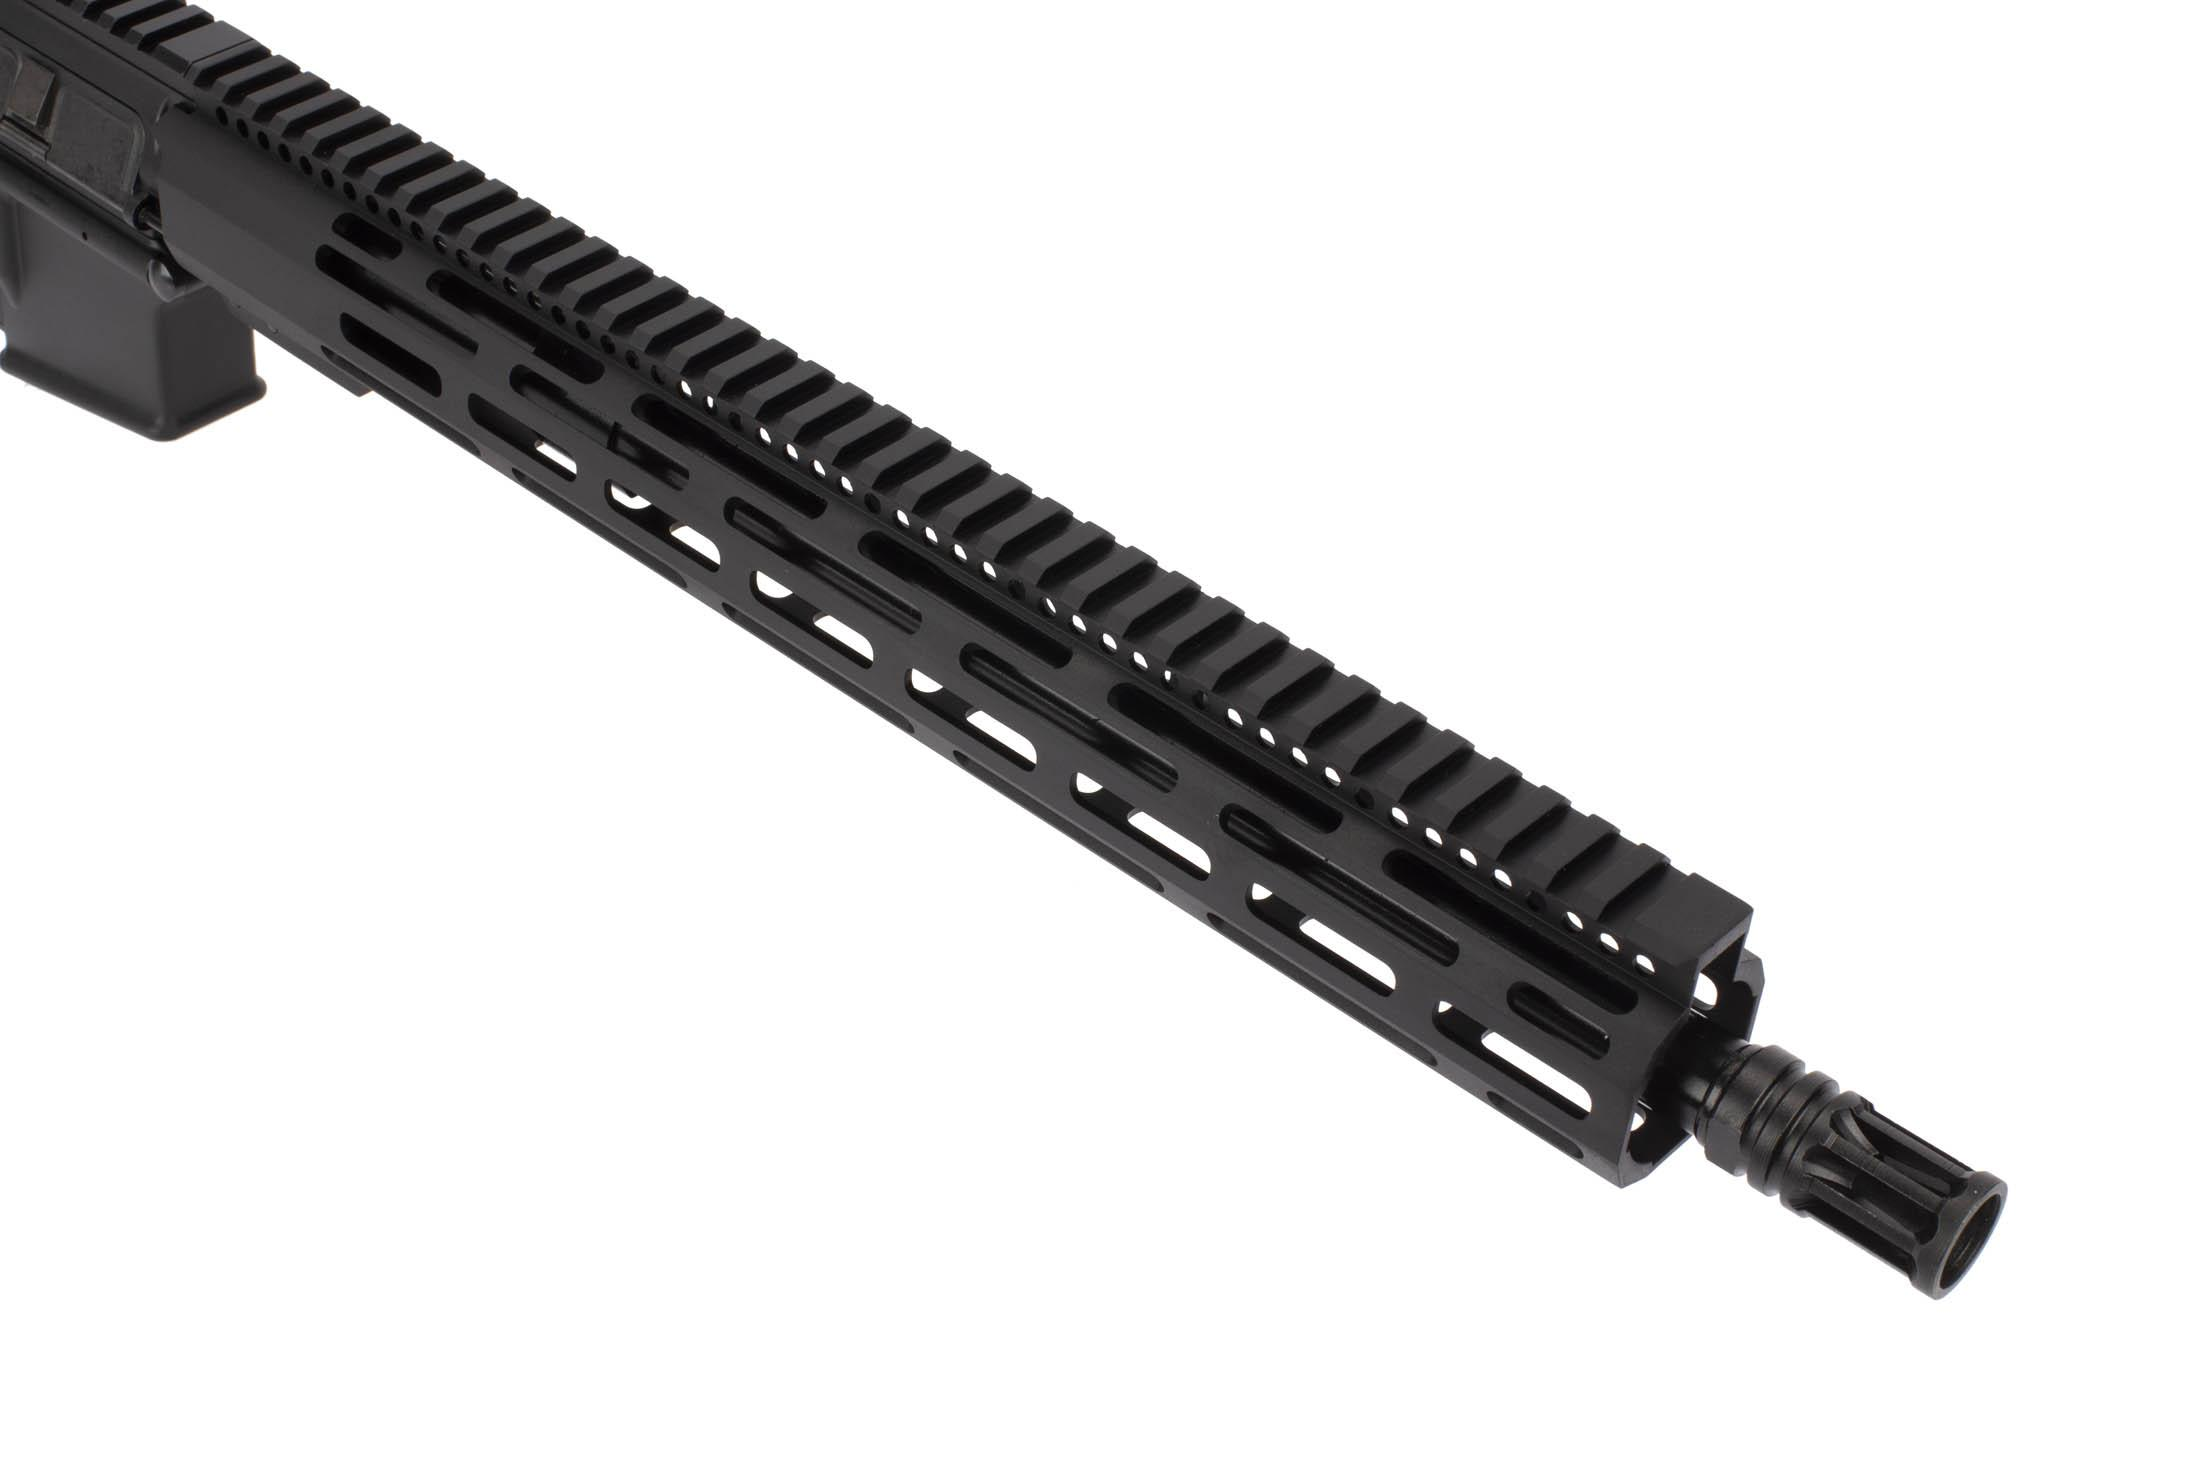 Radical Firearms 16in AR-15 in 300 BLK with M-LOK rail features 5/8x24 threading with an A2 flash hider